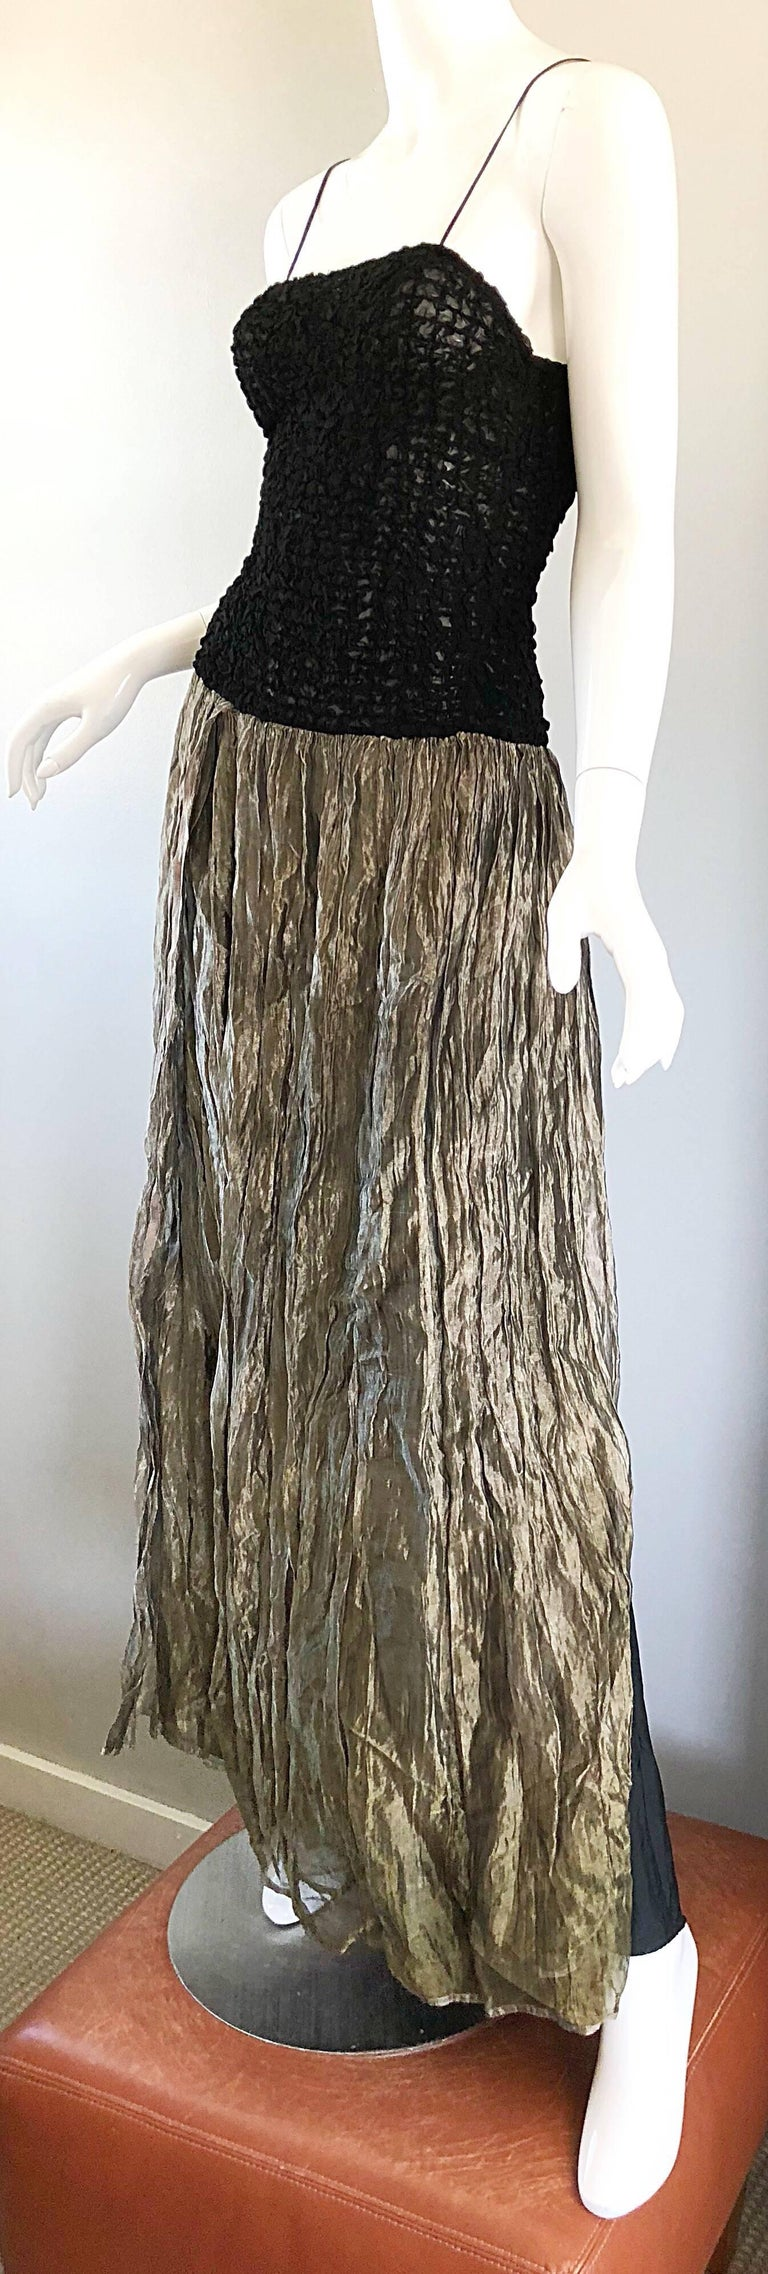 Vintage Morgane Le Fay 1990s Black + Gold Metallic Ombre 90s Evening Gown Dress 2